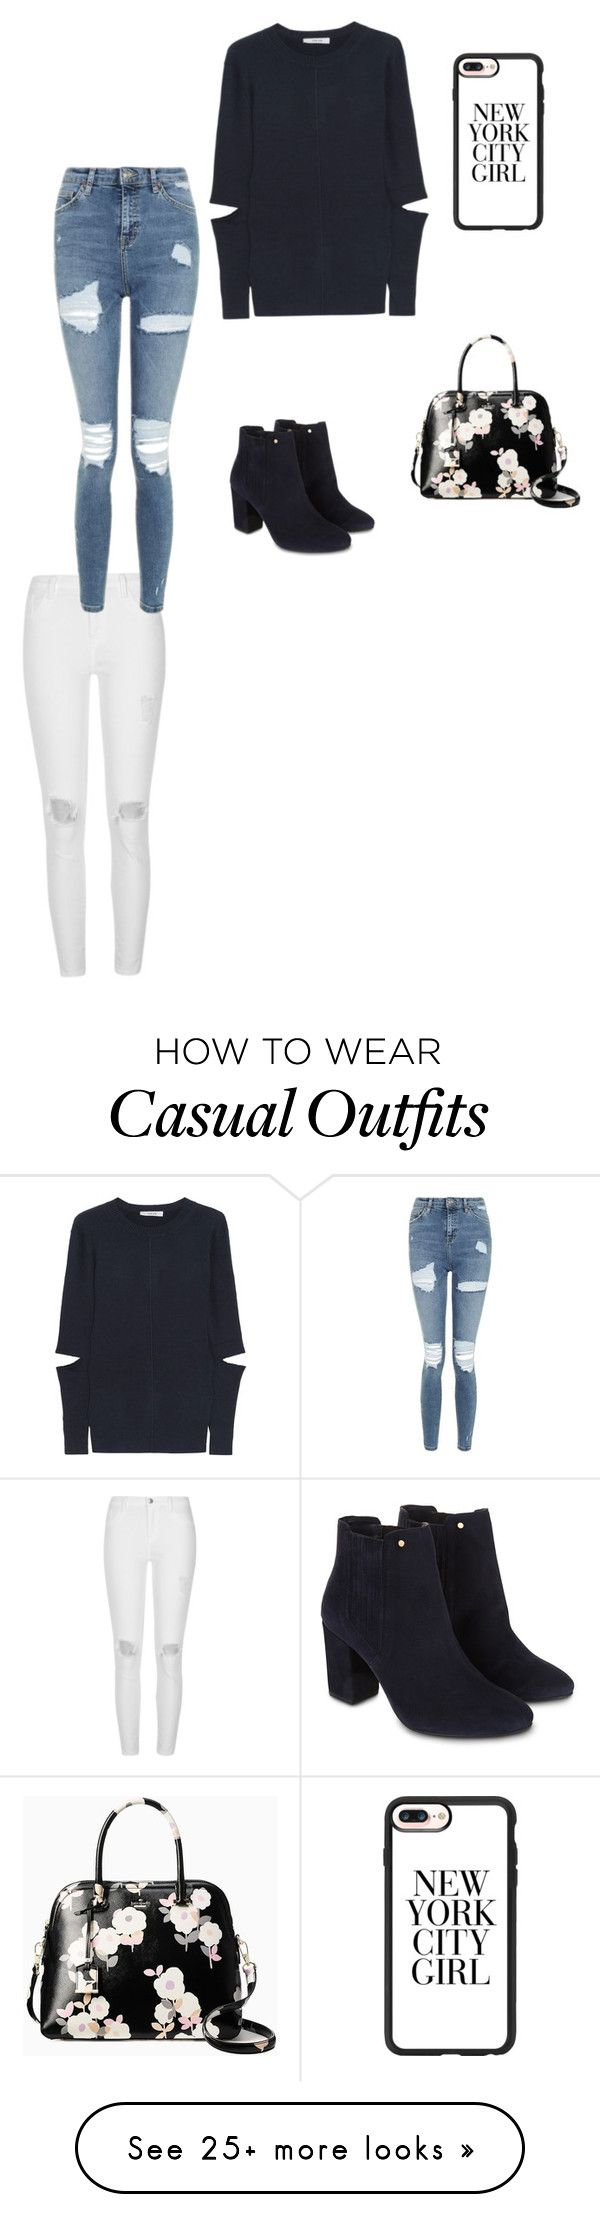 """""""Casual outfit"""" by outfitscasual on Polyvore featuring Adeam, River Island, Monsoon, Casetify, Topshop and Kate Spade"""